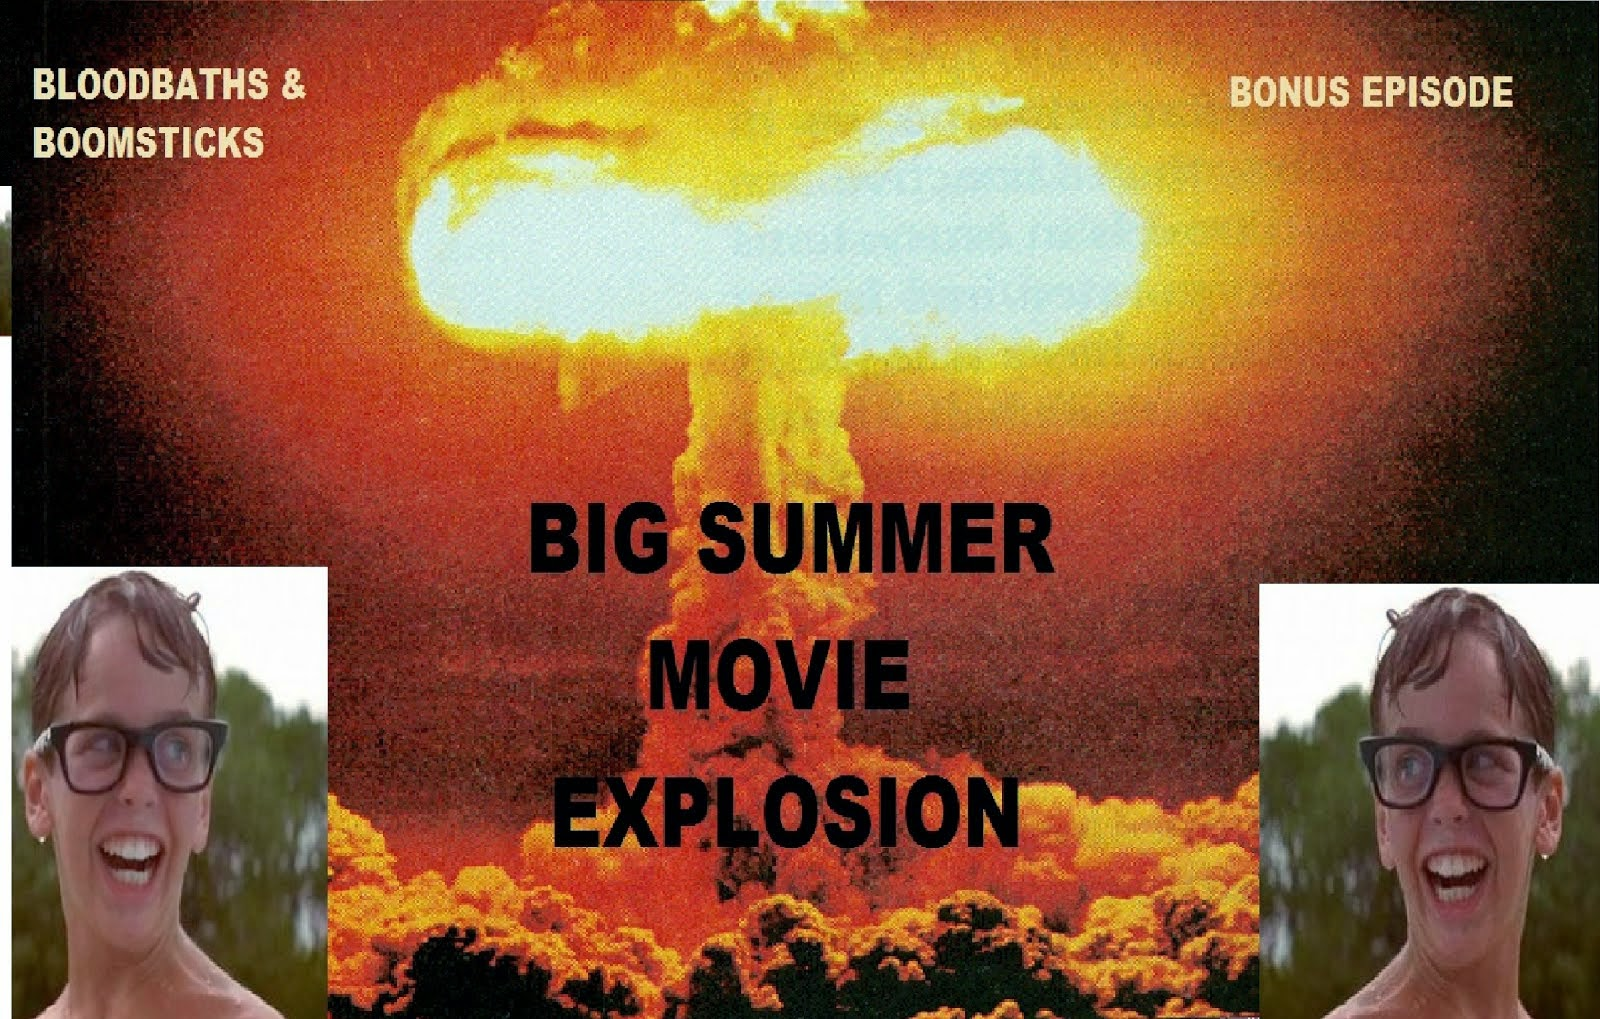 THE BIG SUMMER MOVIE EXPLOSION